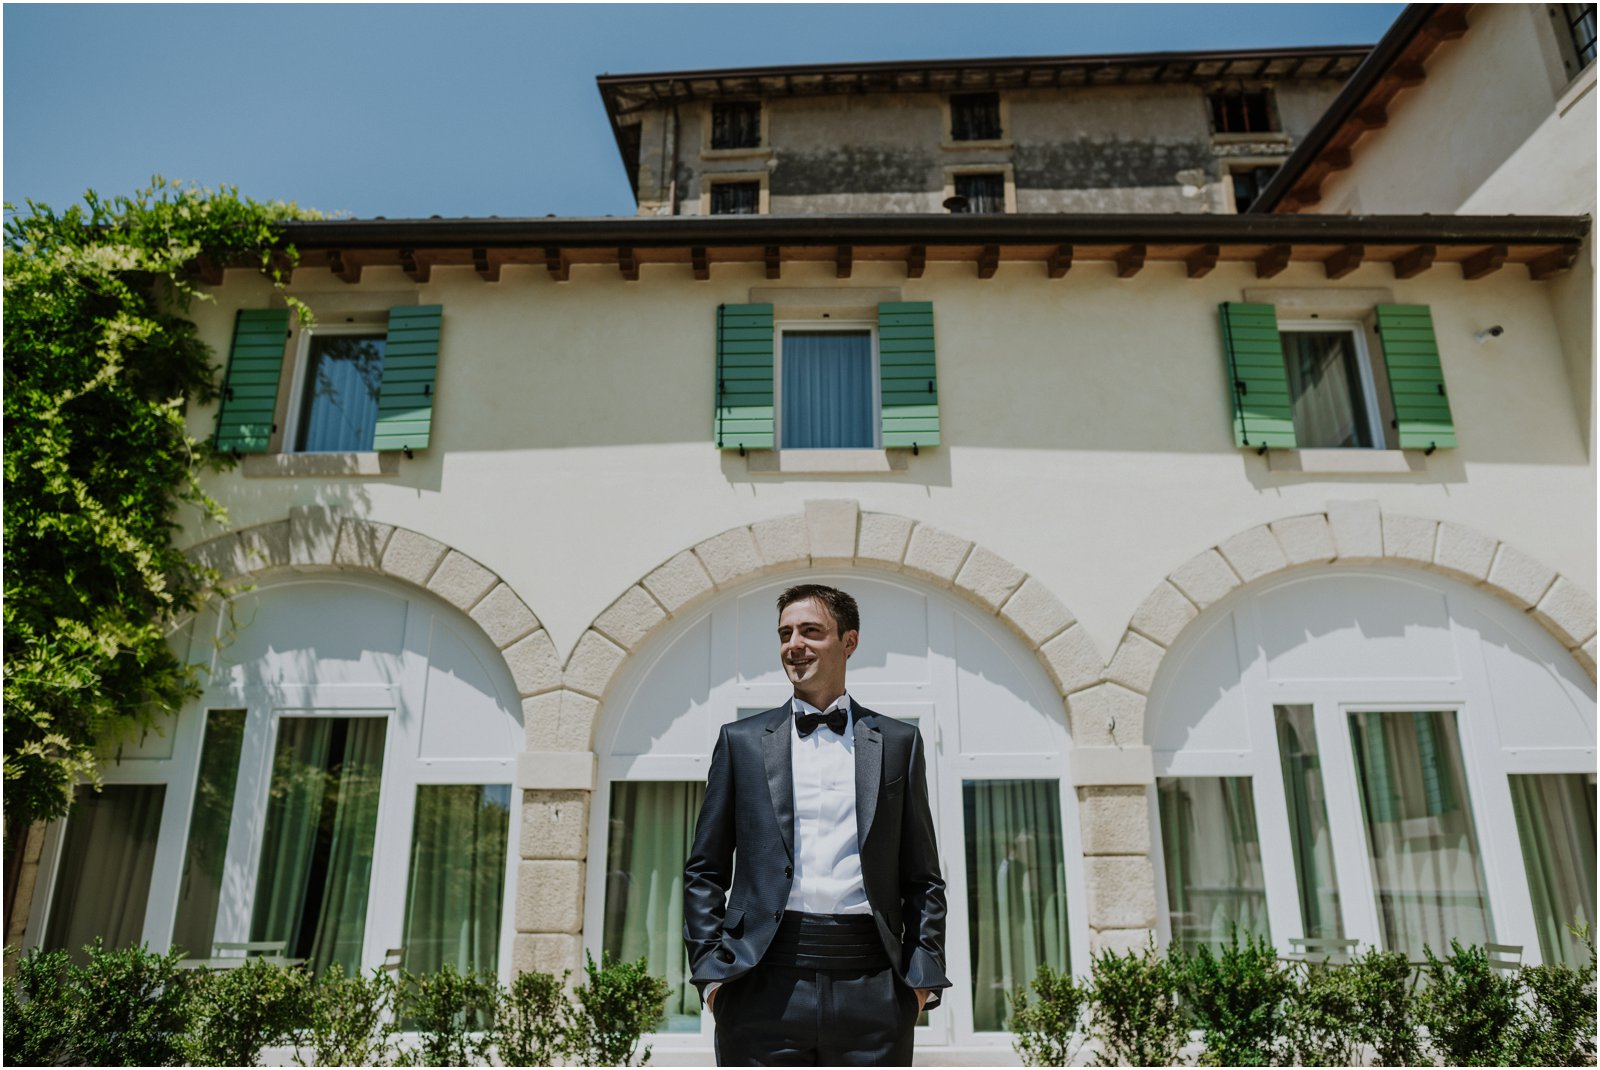 veronasposi foto e video matrimonio verona_0560